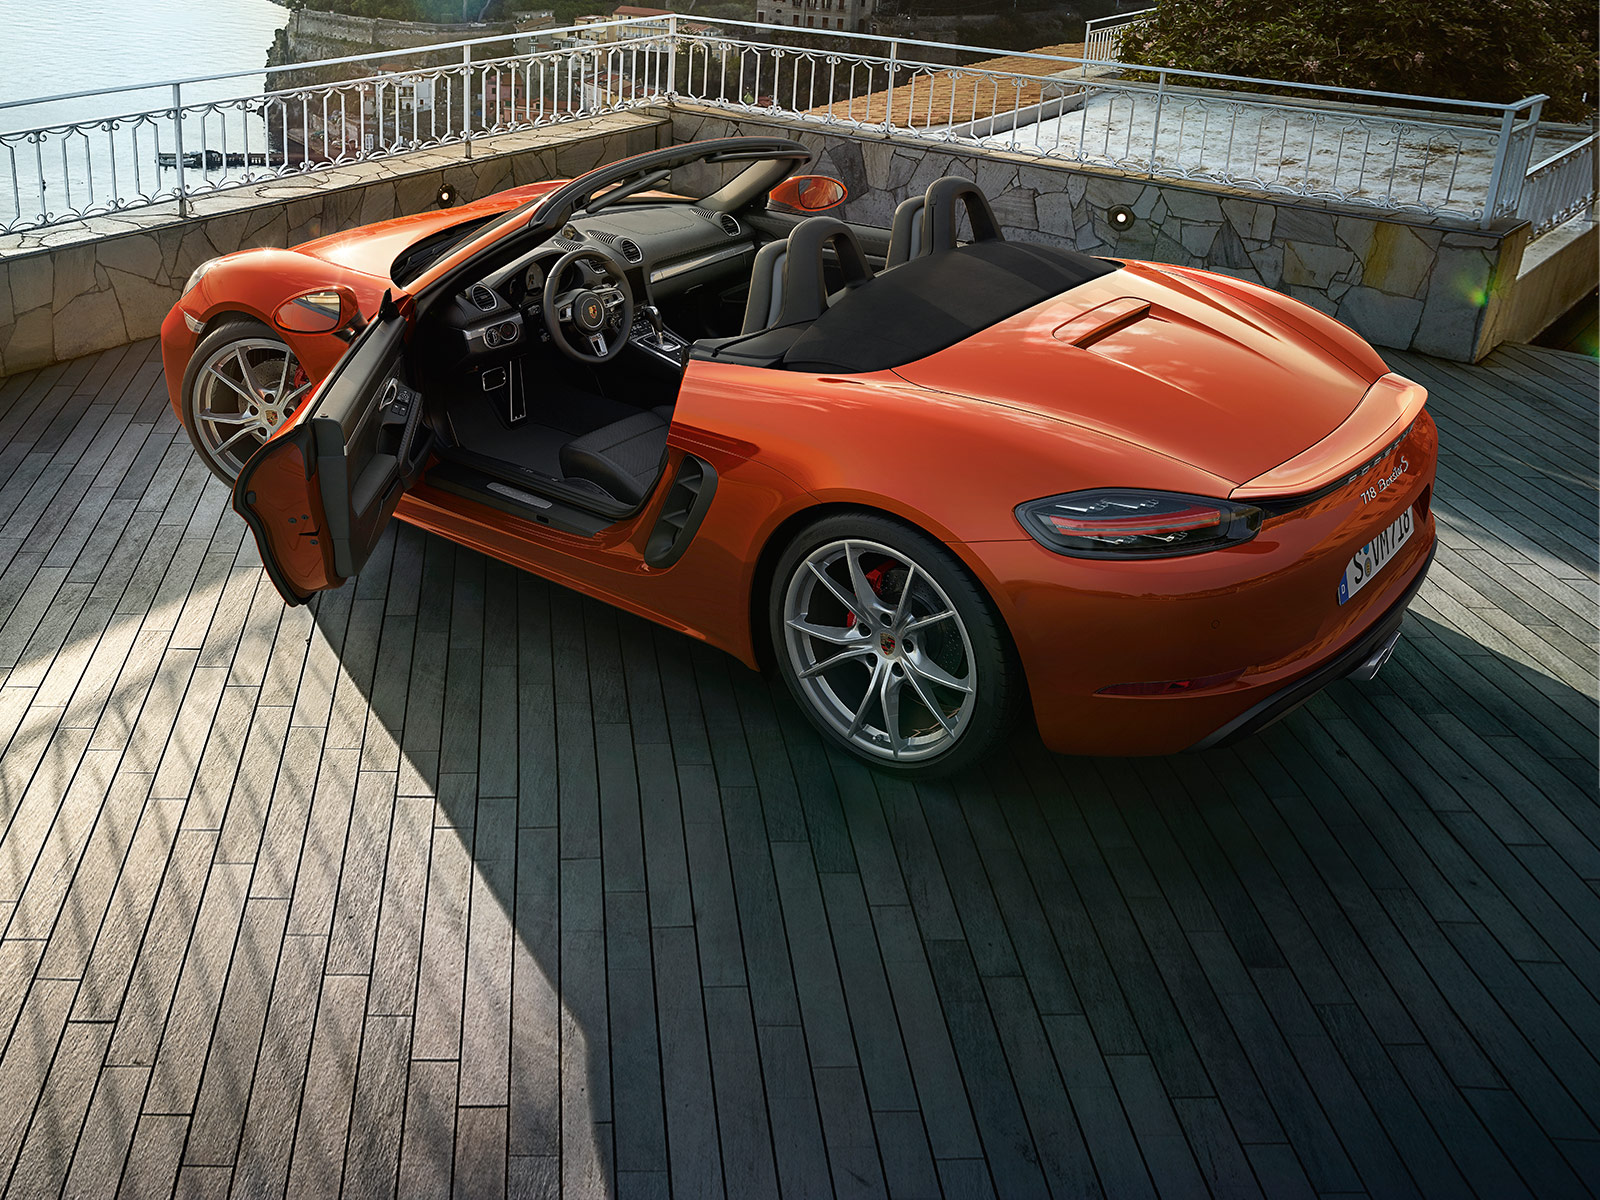 Porsche The new 718 Boxster - Roll-over protection